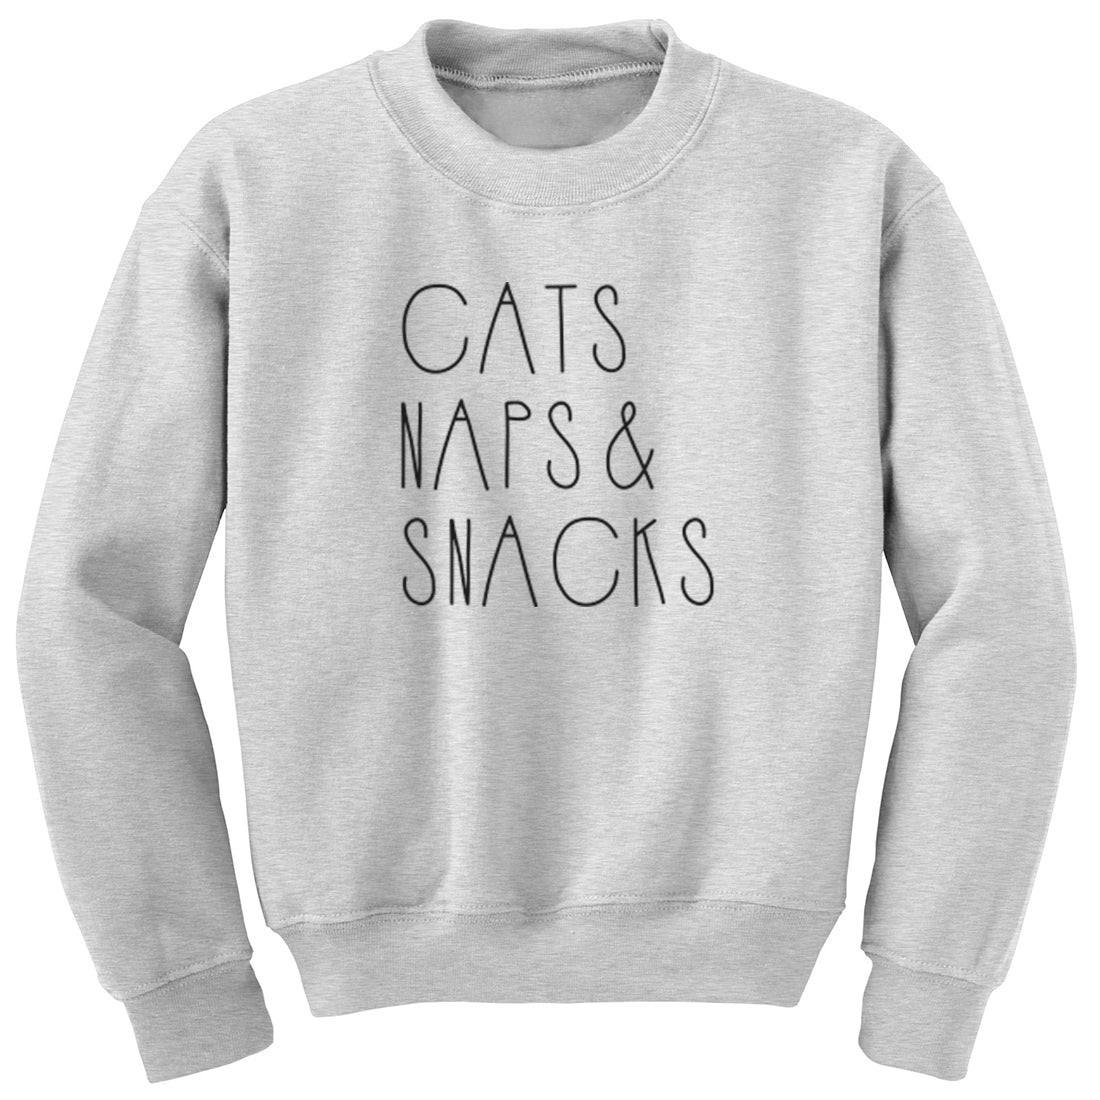 Cats Naps & Snacks Childrens Ages 3/4-12/14 Unisex Jumper K1834 - Illustrated Identity Ltd.